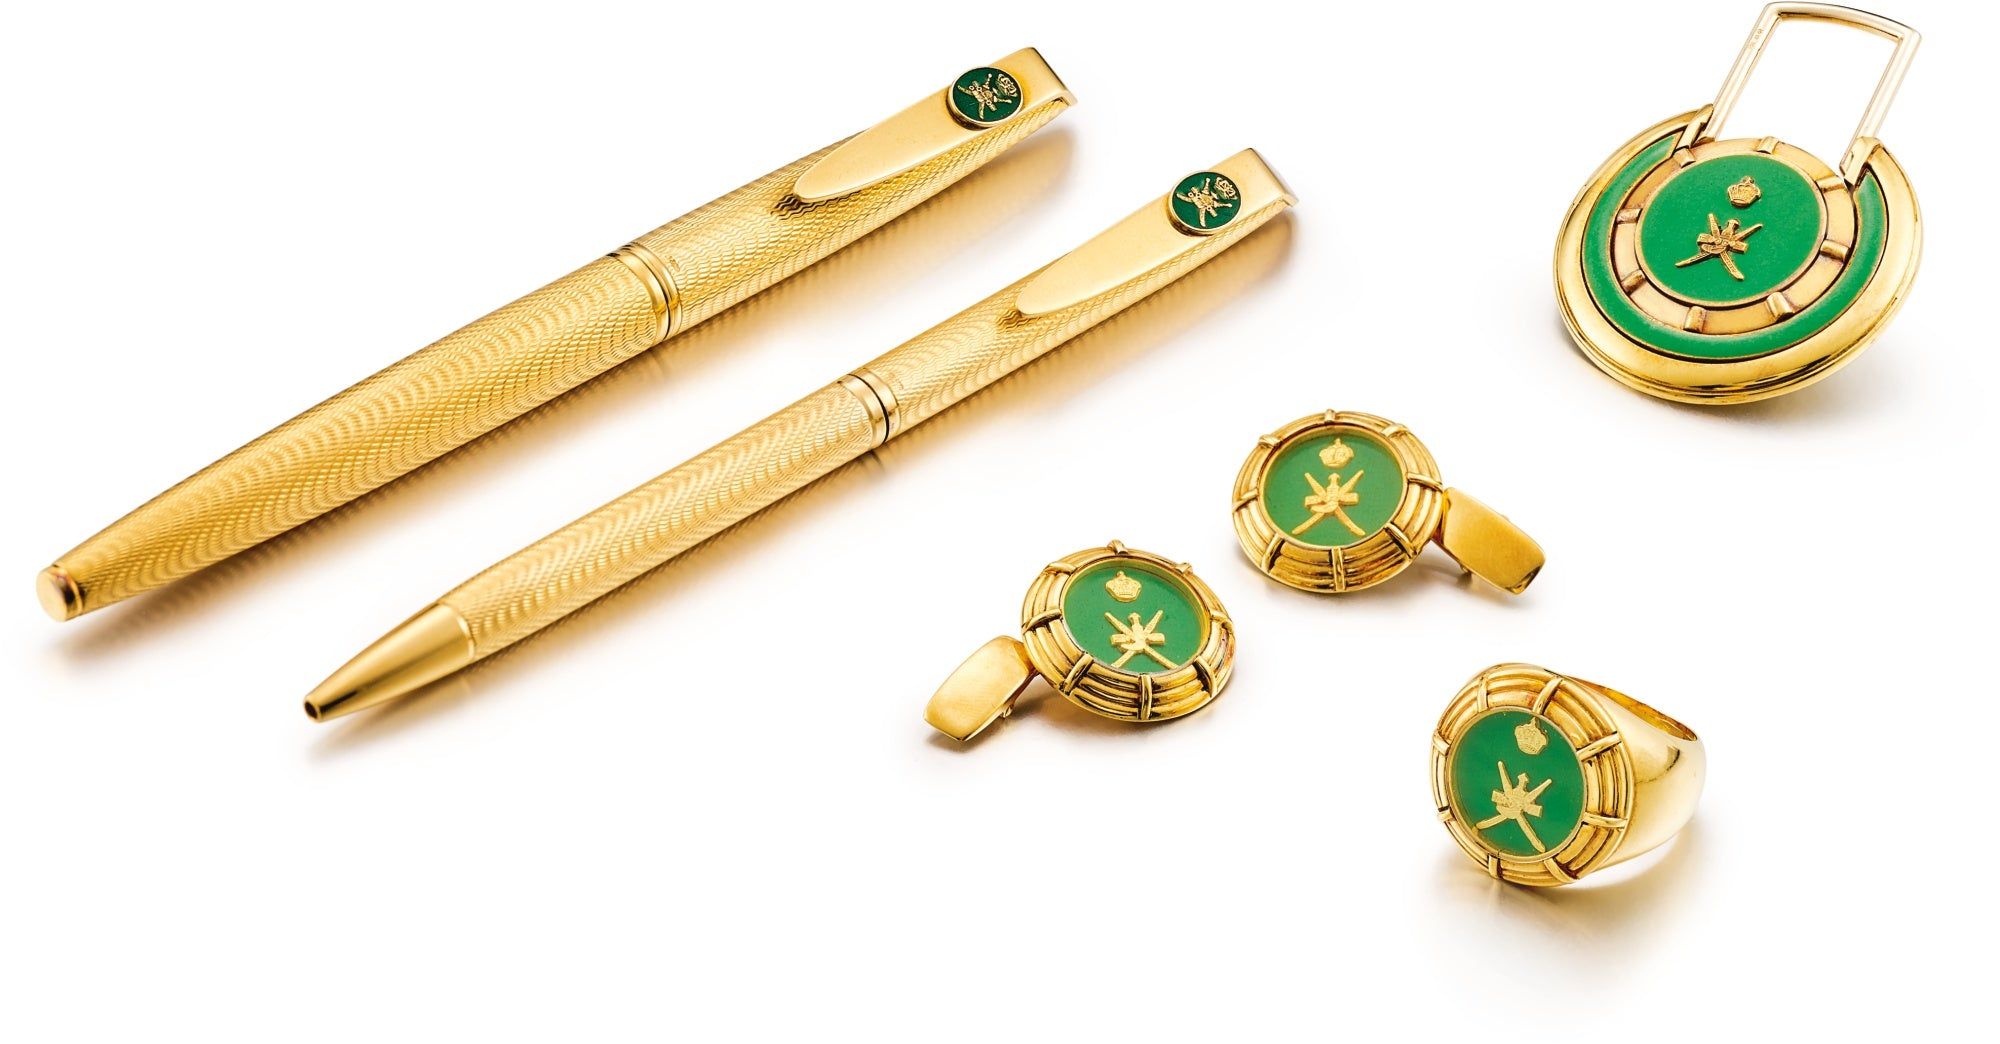 A set of gold pens, cufflinks, a ring and money clip all bearing the Omani Khanjar for A Collected Man London